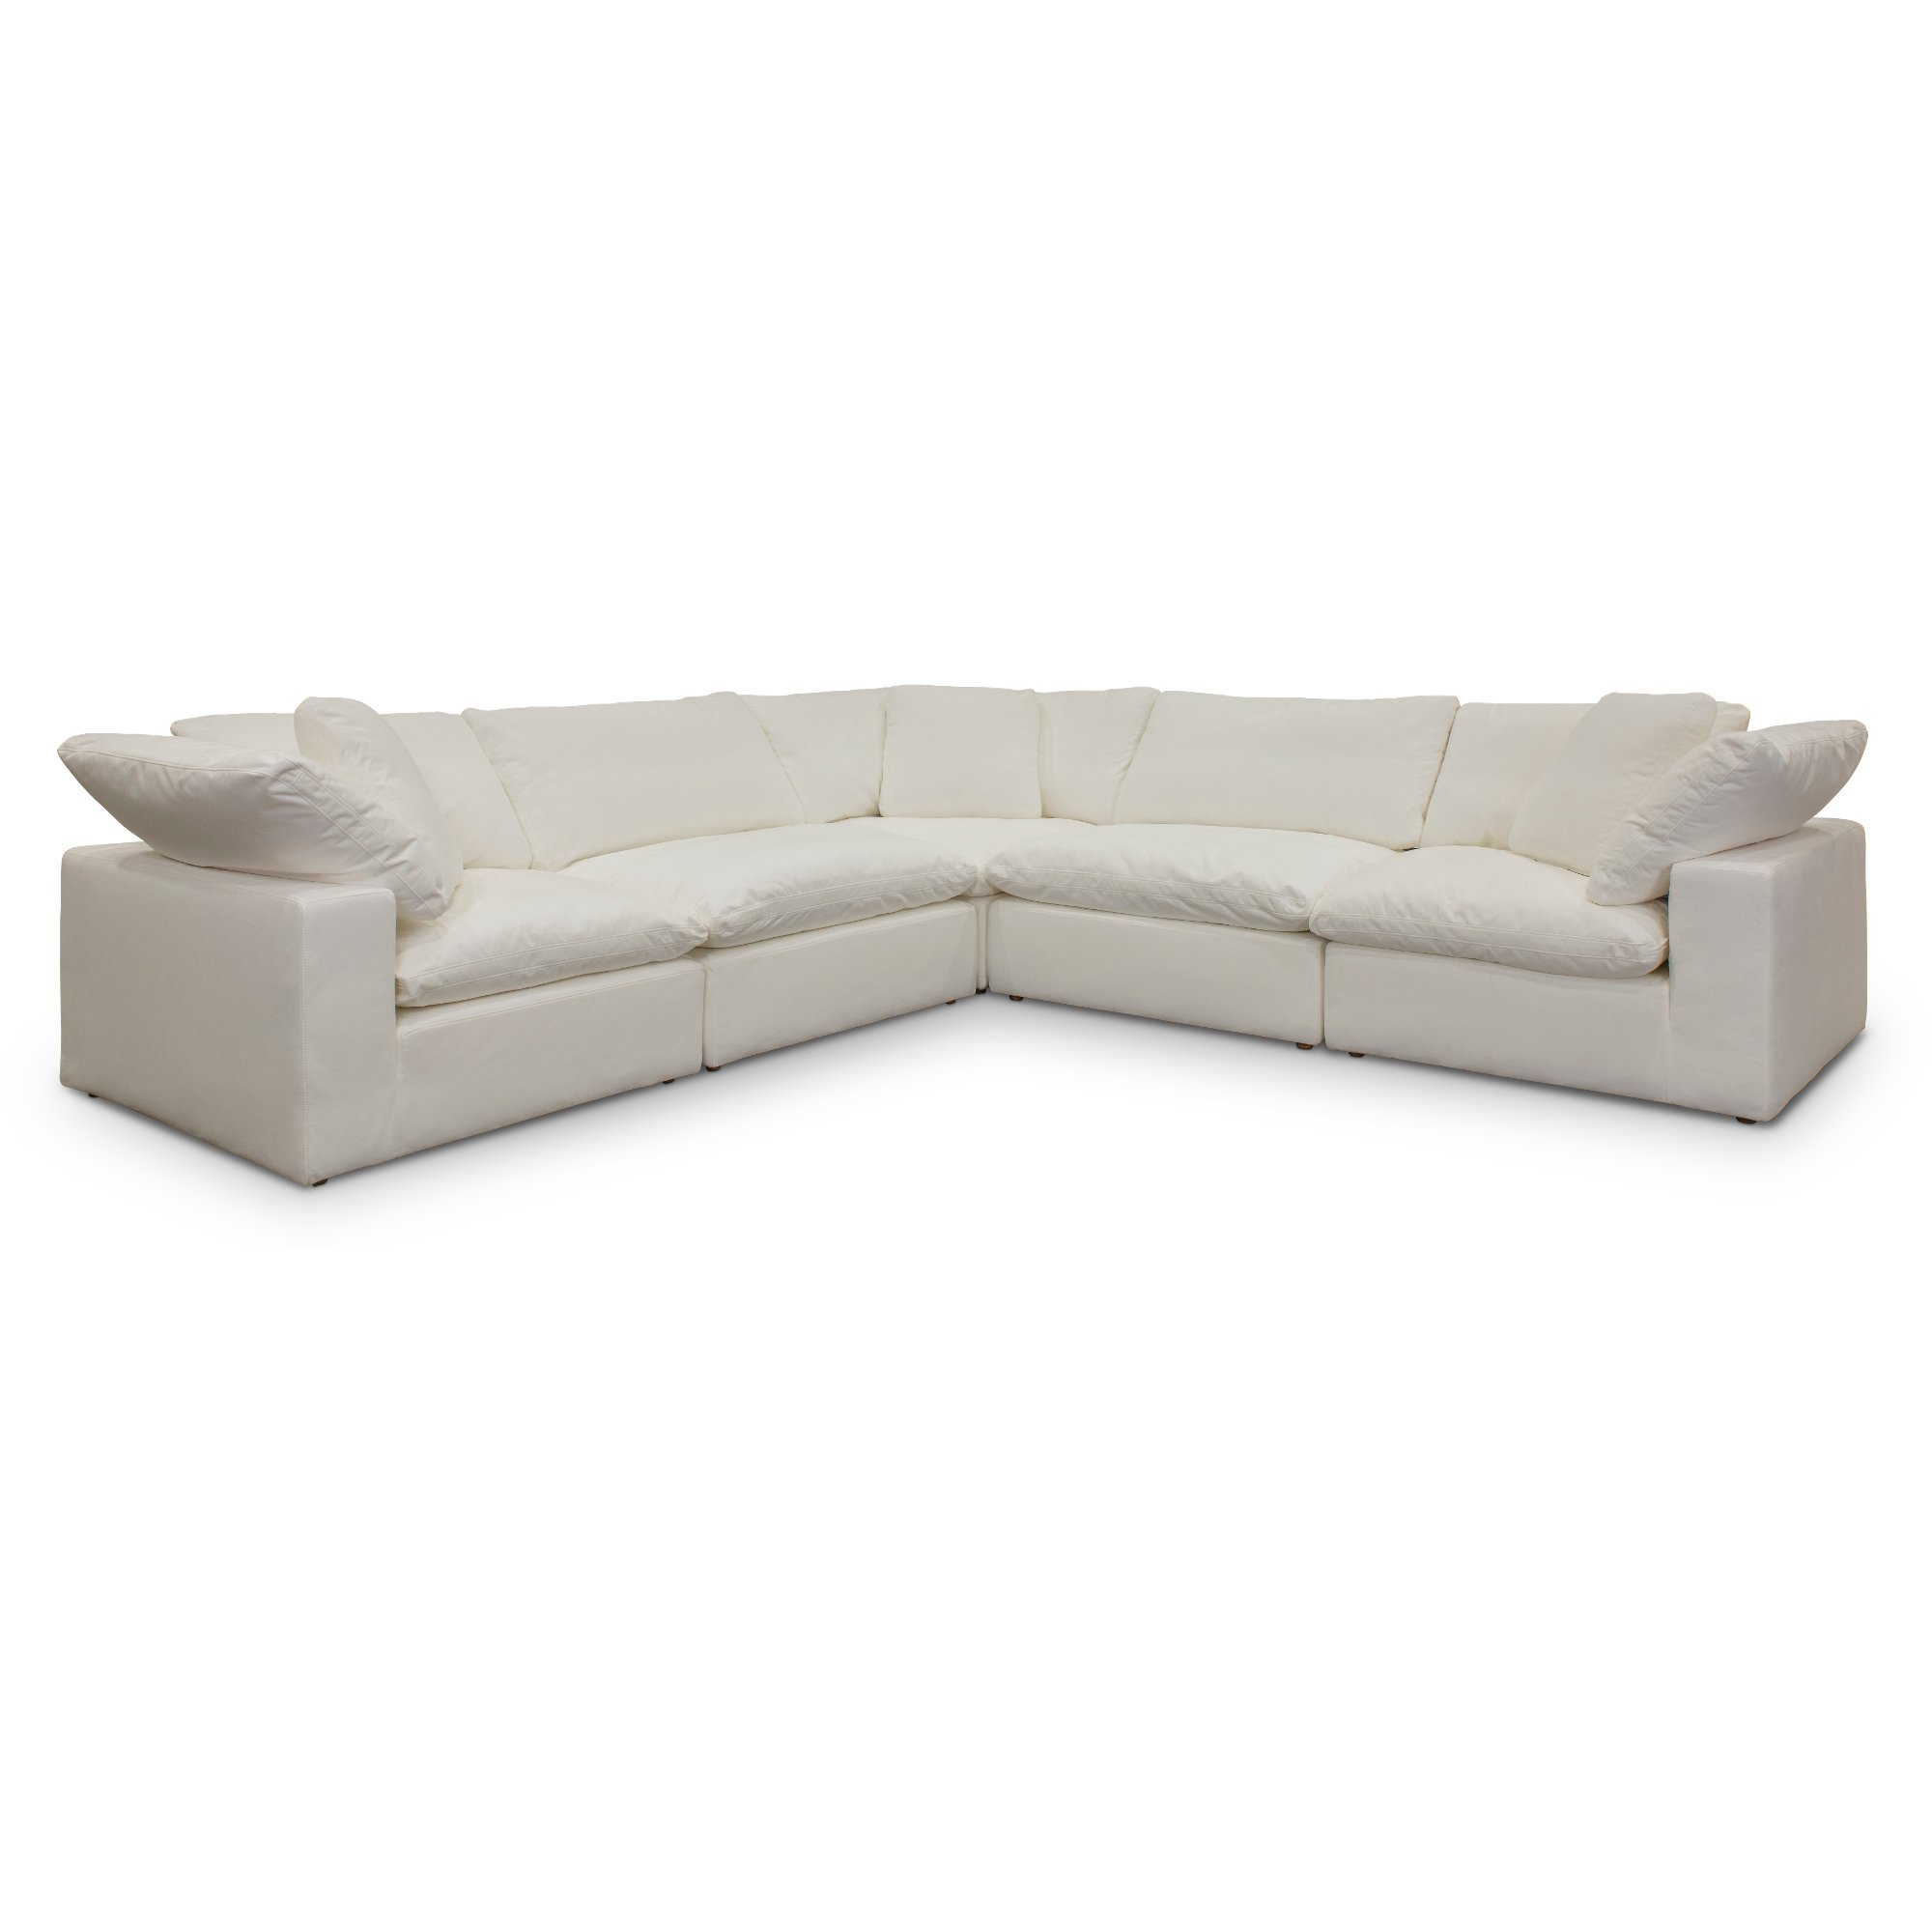 Pearl White 5 Piece Sectional Sofa - Peyton | RC Willey Furniture Store